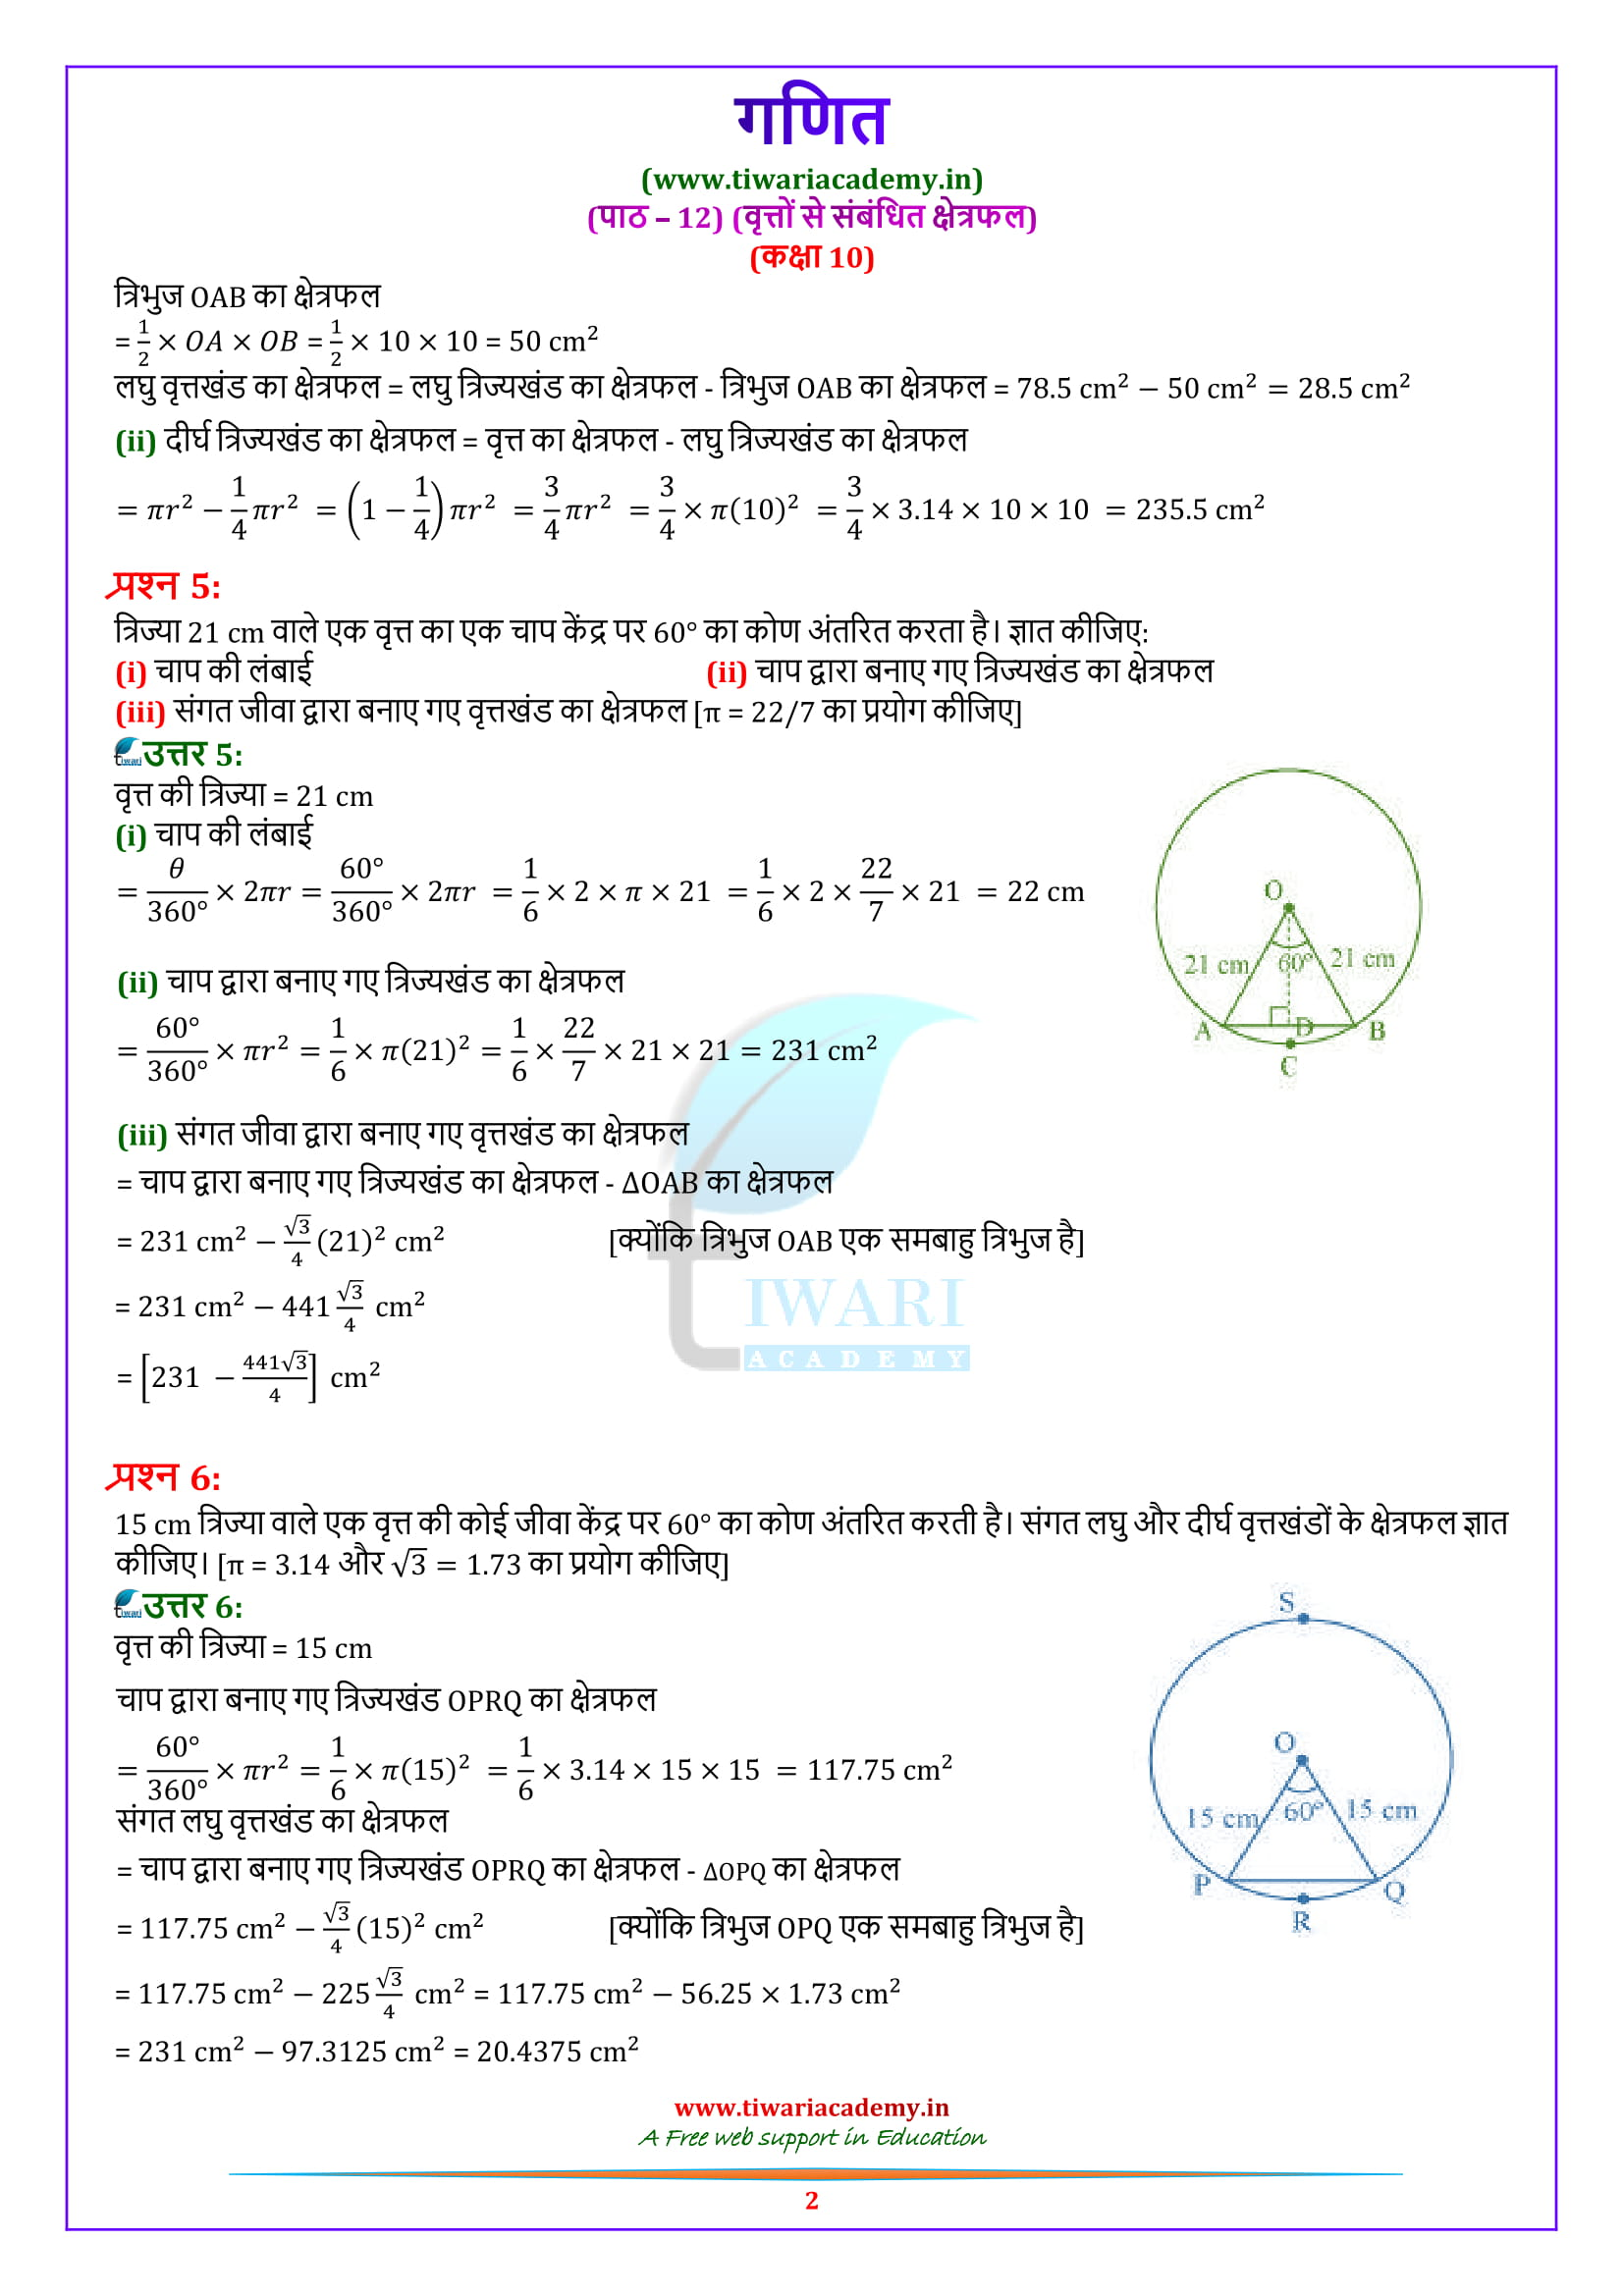 Class 10 Maths Exercise 12.2 Solutions updated for new syllabus 2019